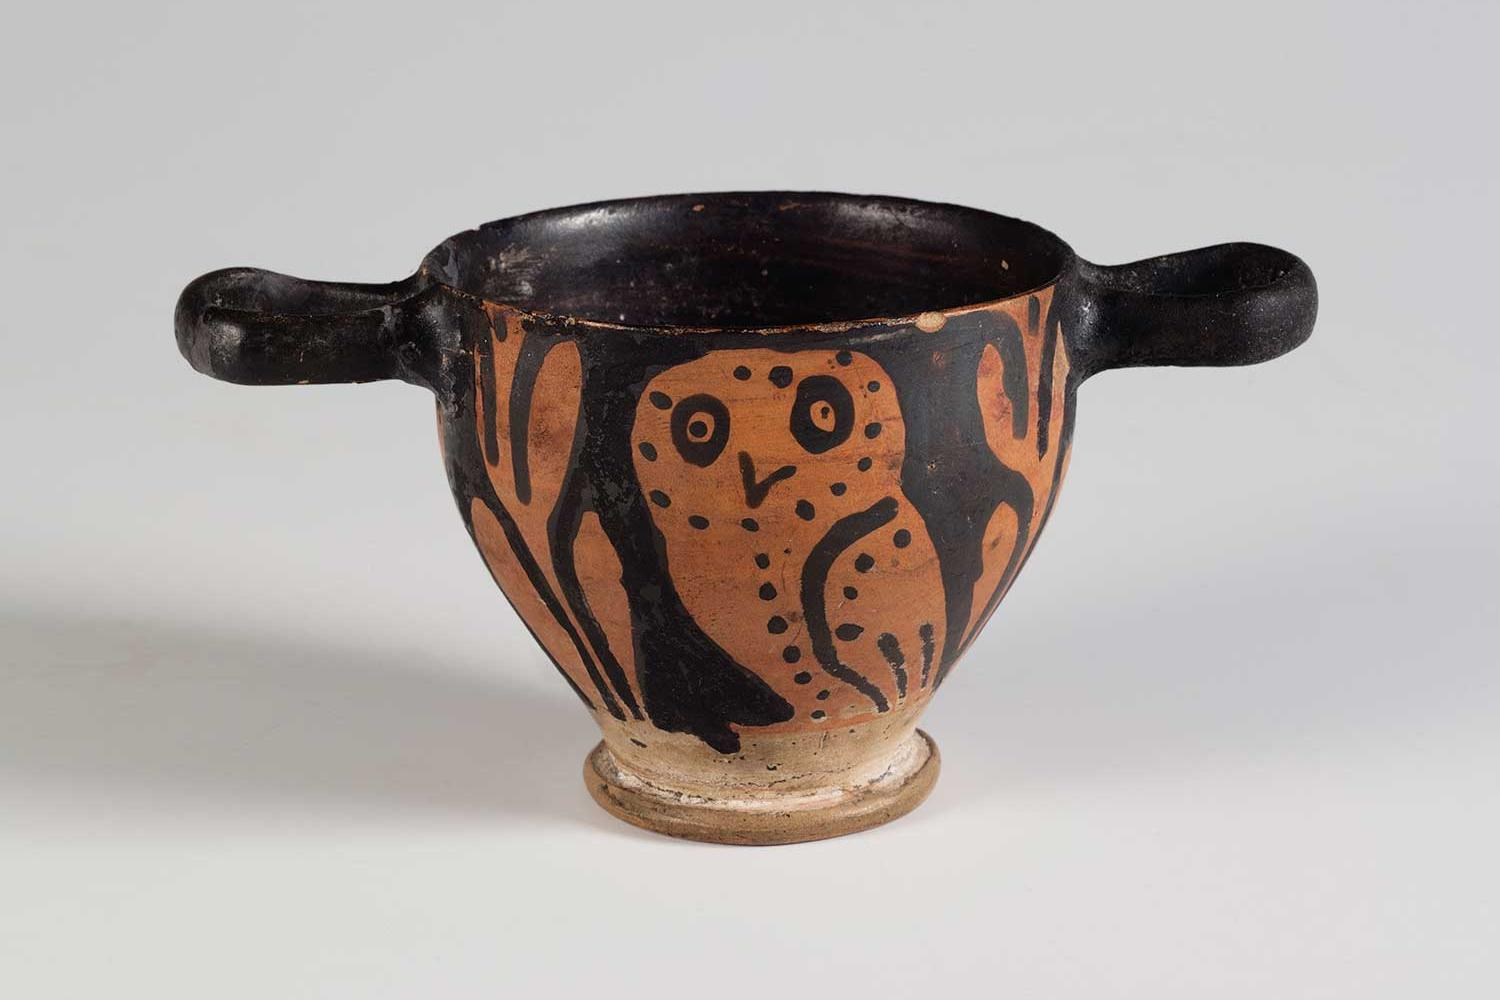 Small black cup with a horizontal handle on each side of the rim, decorated with orange owl.